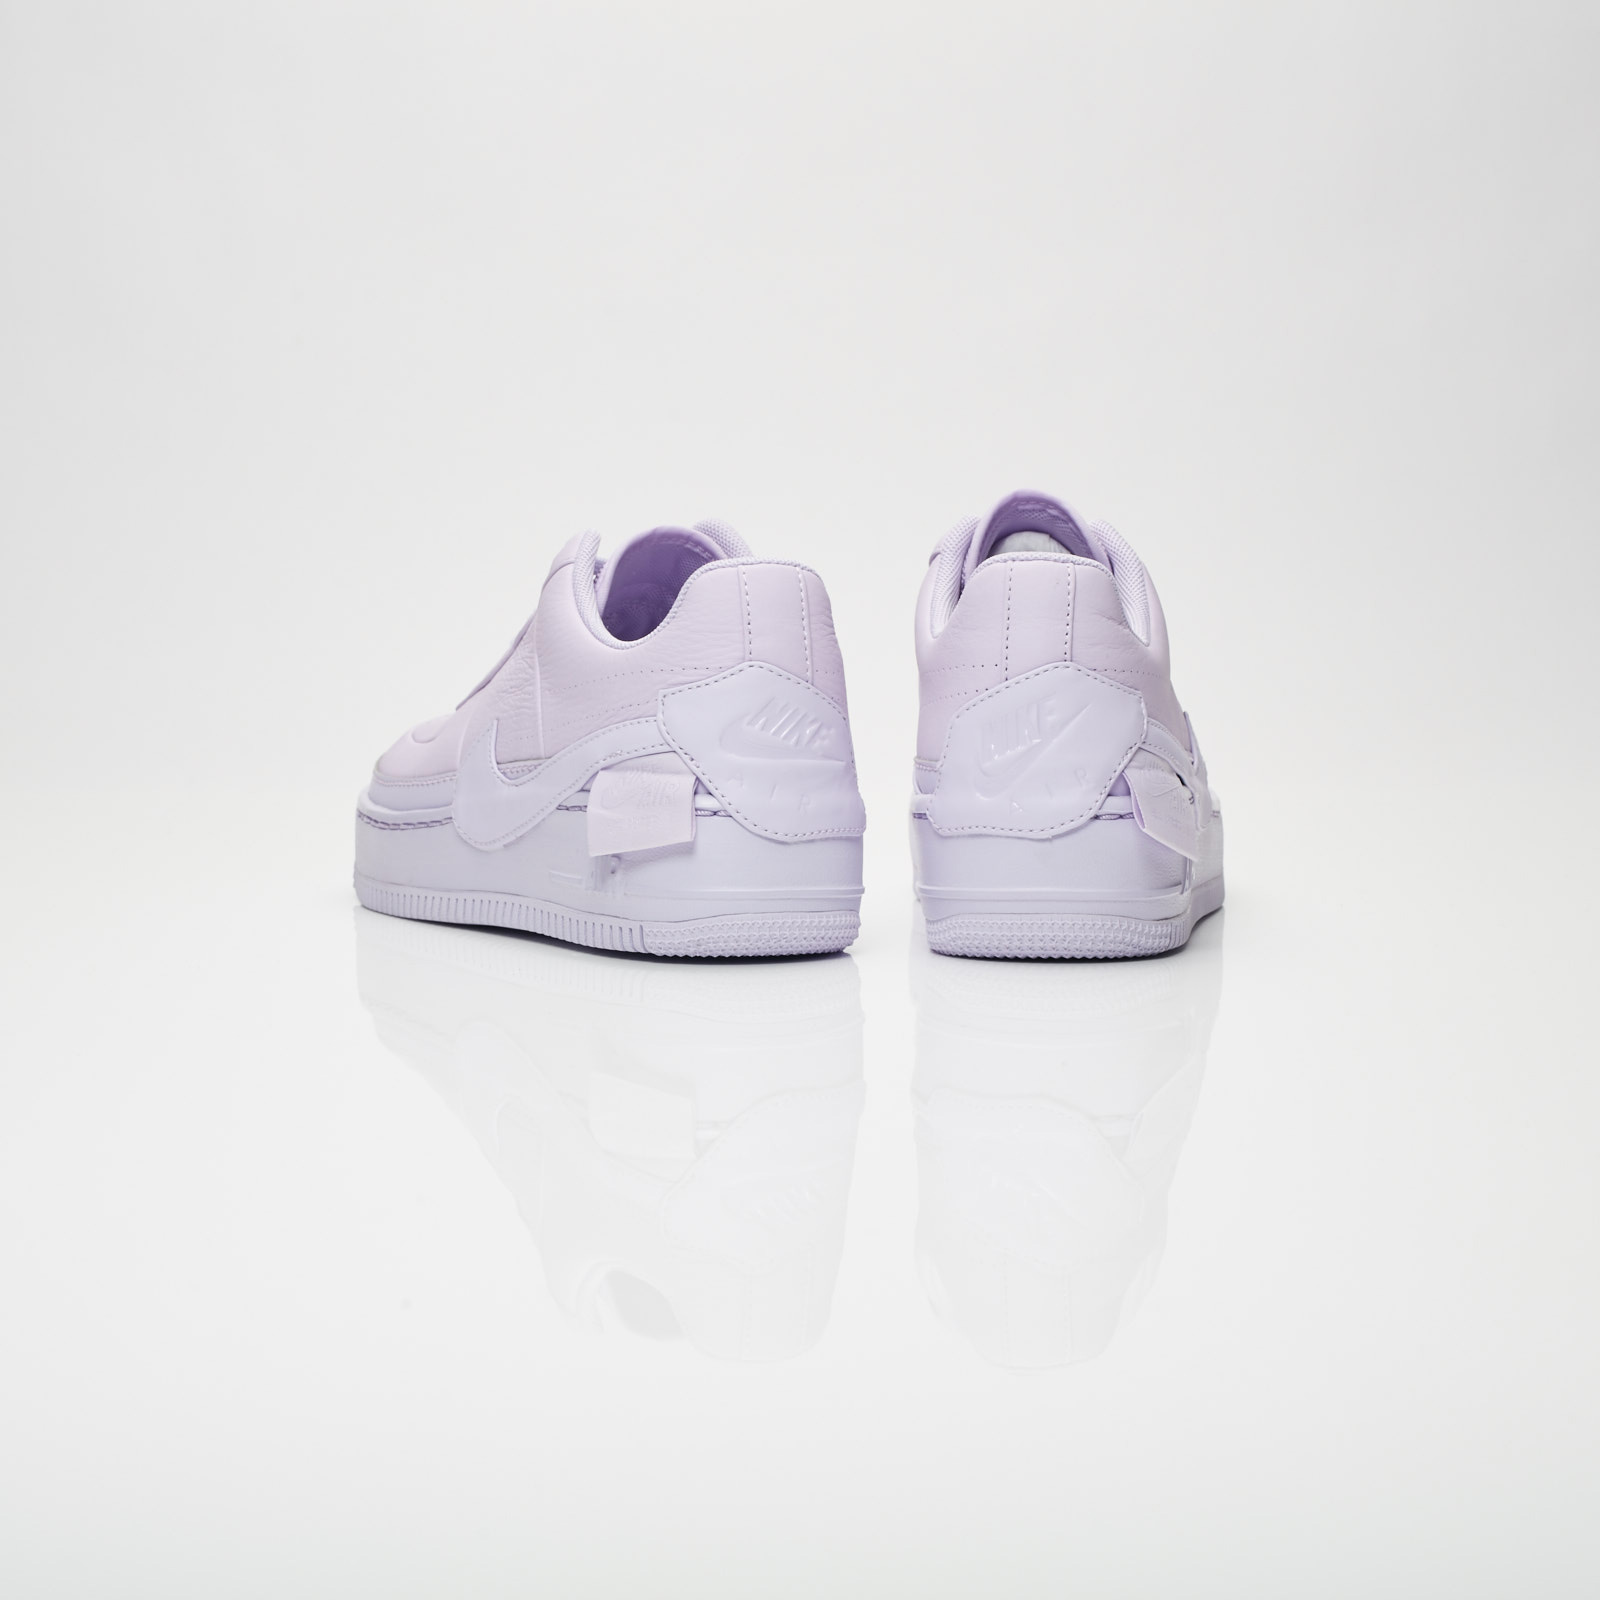 premium selection 46c83 12be4 Nike Wmns Air Force 1 Jester XX - Ao1220-500 ...